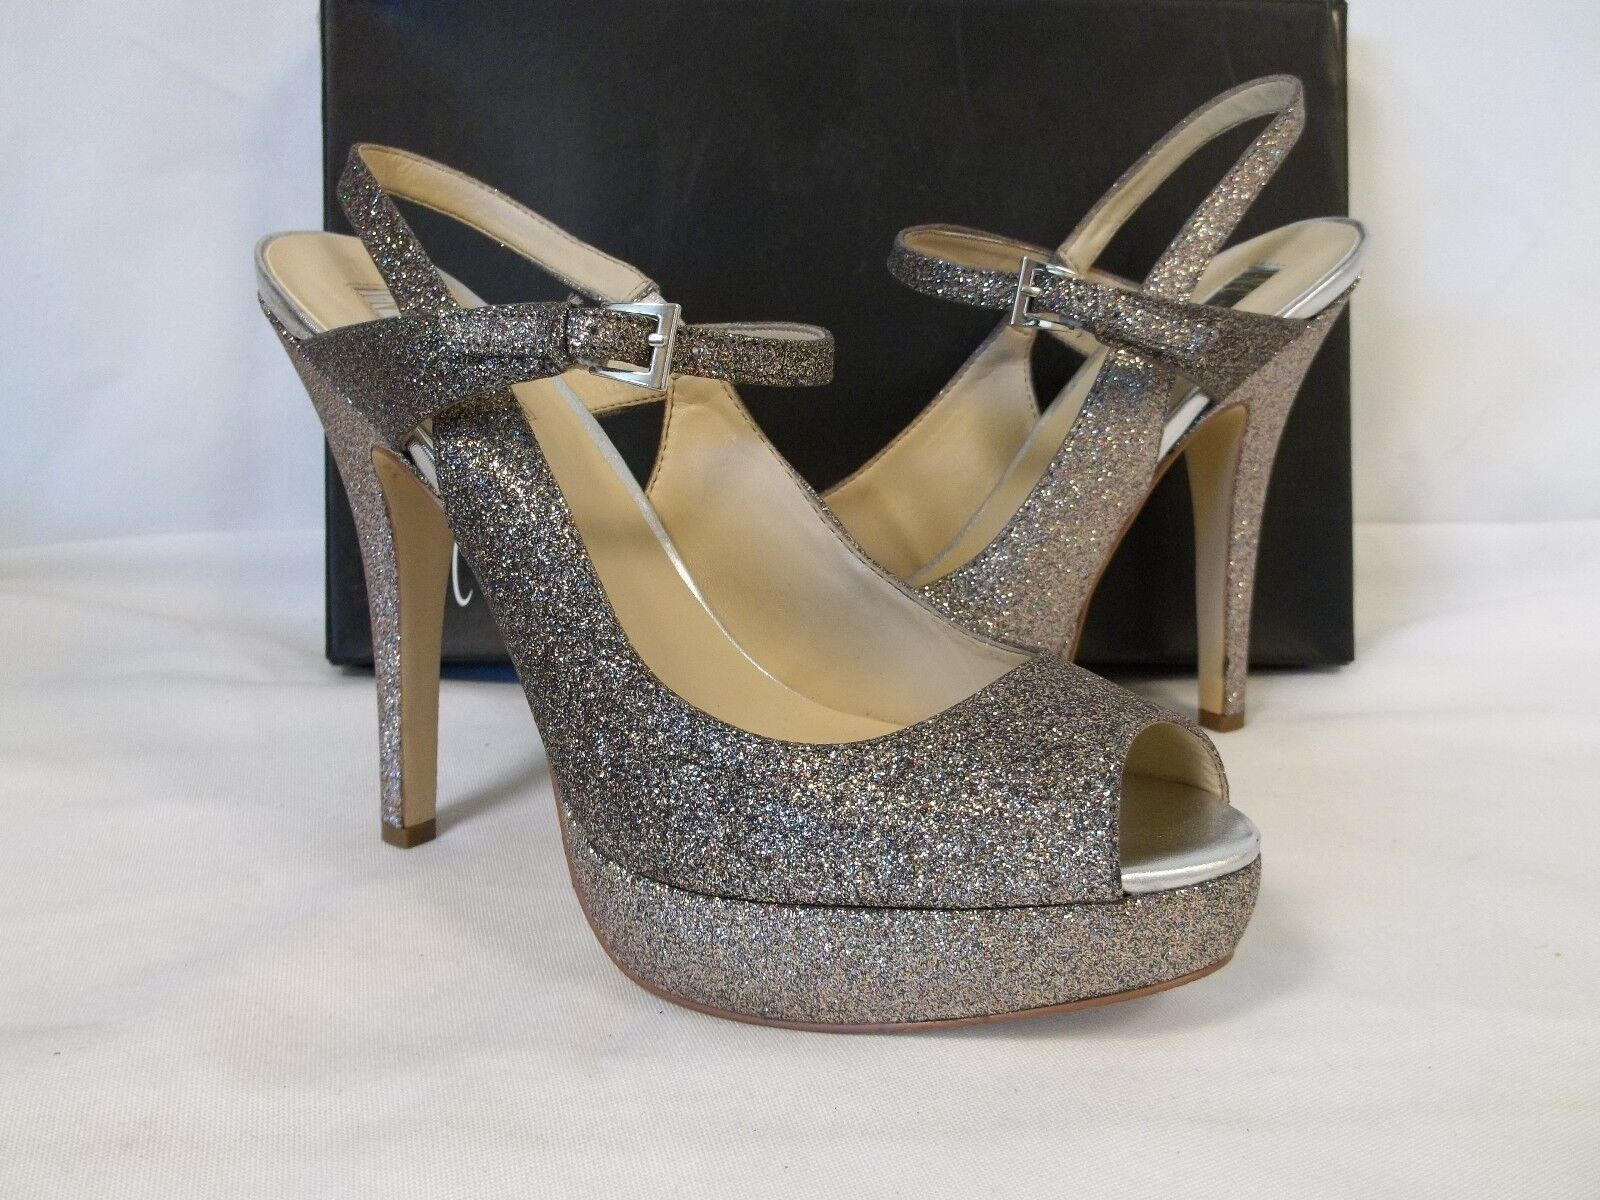 INC International Concepts 10 M Mariel Multi Open Toe Heels New Womens shoes